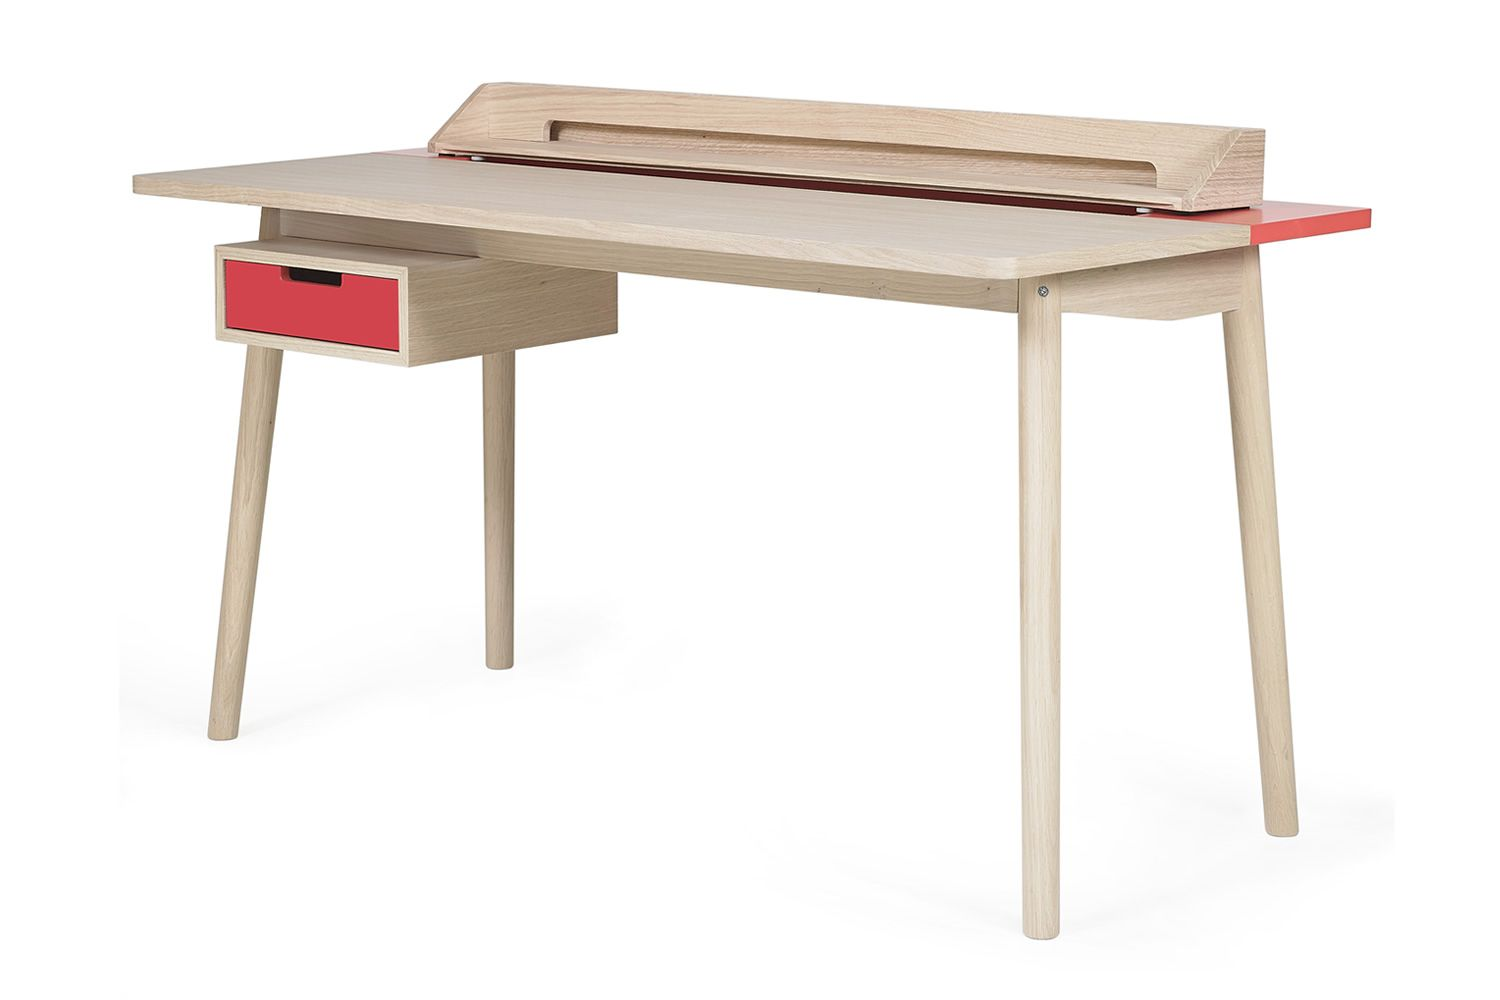 Honoré design work desk in wood and mdf with drawers and